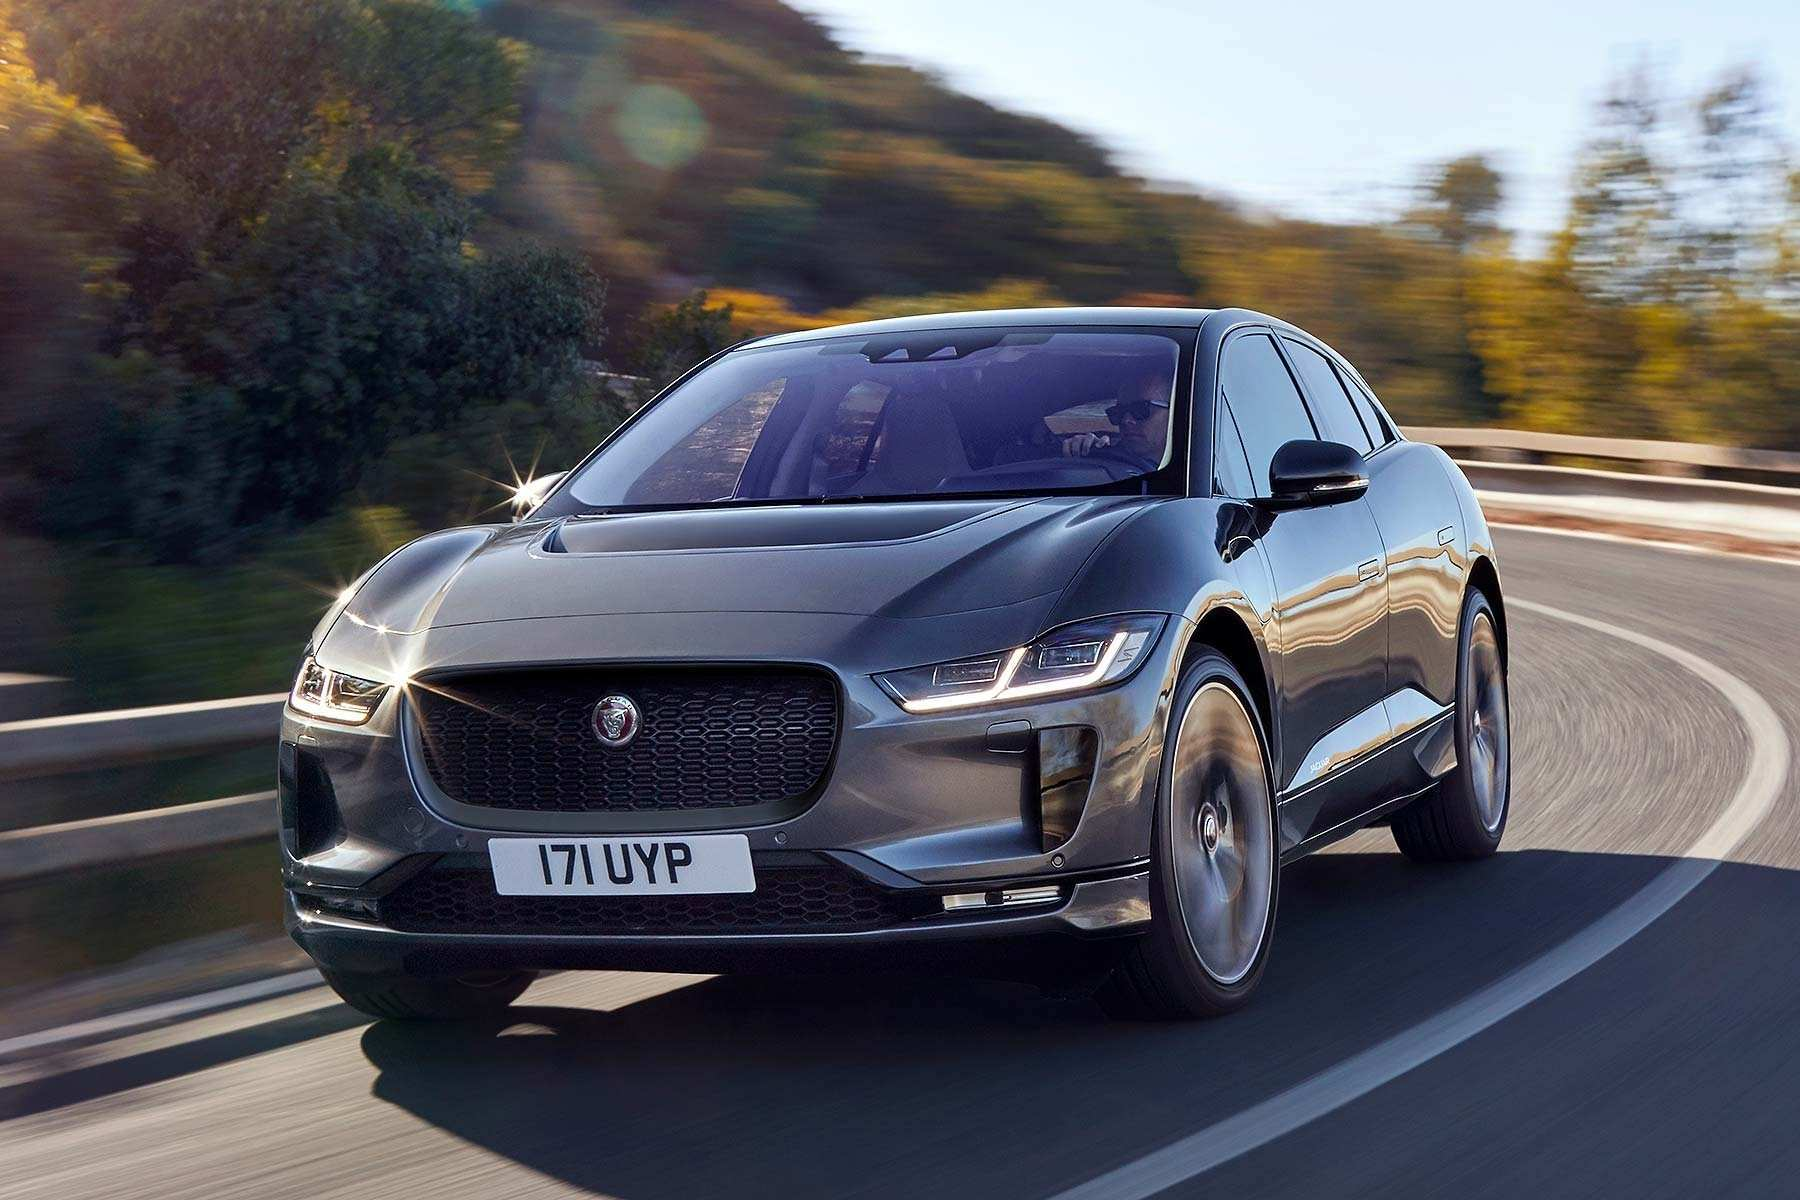 57 Gallery of 2019 Jaguar I Pace Release Date Exterior and Interior by 2019 Jaguar I Pace Release Date